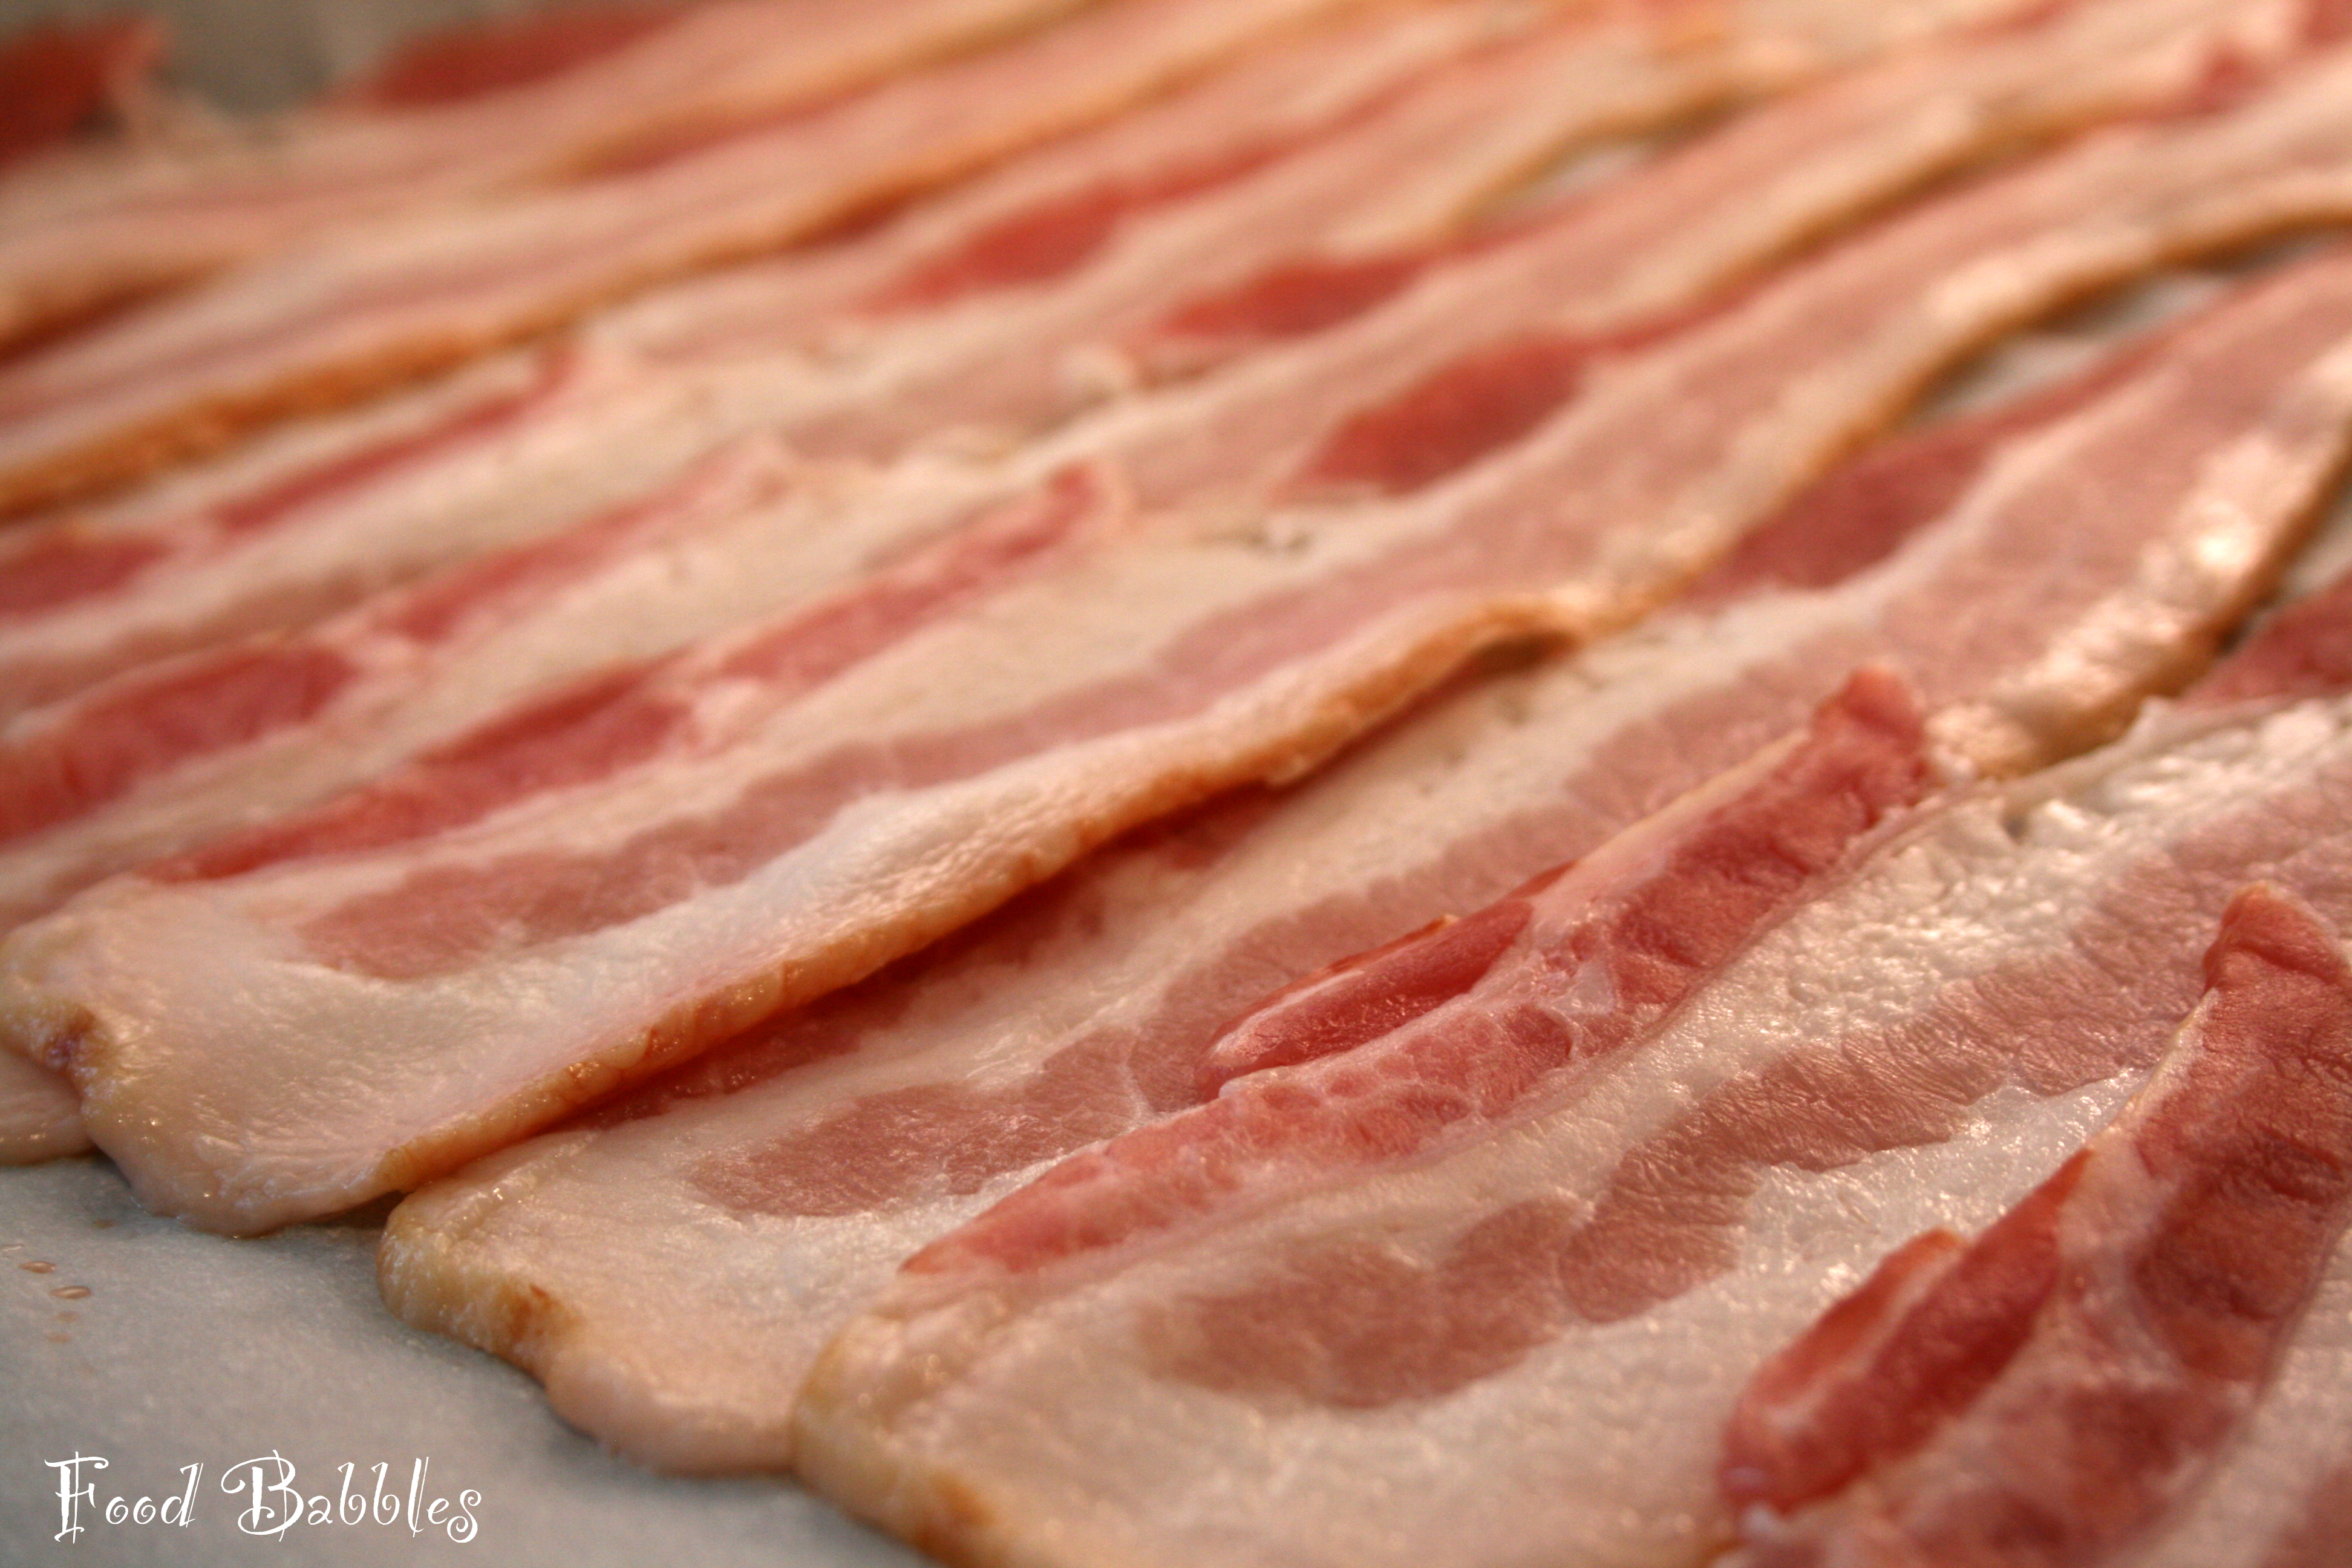 Bacon Wallpapers High Quality